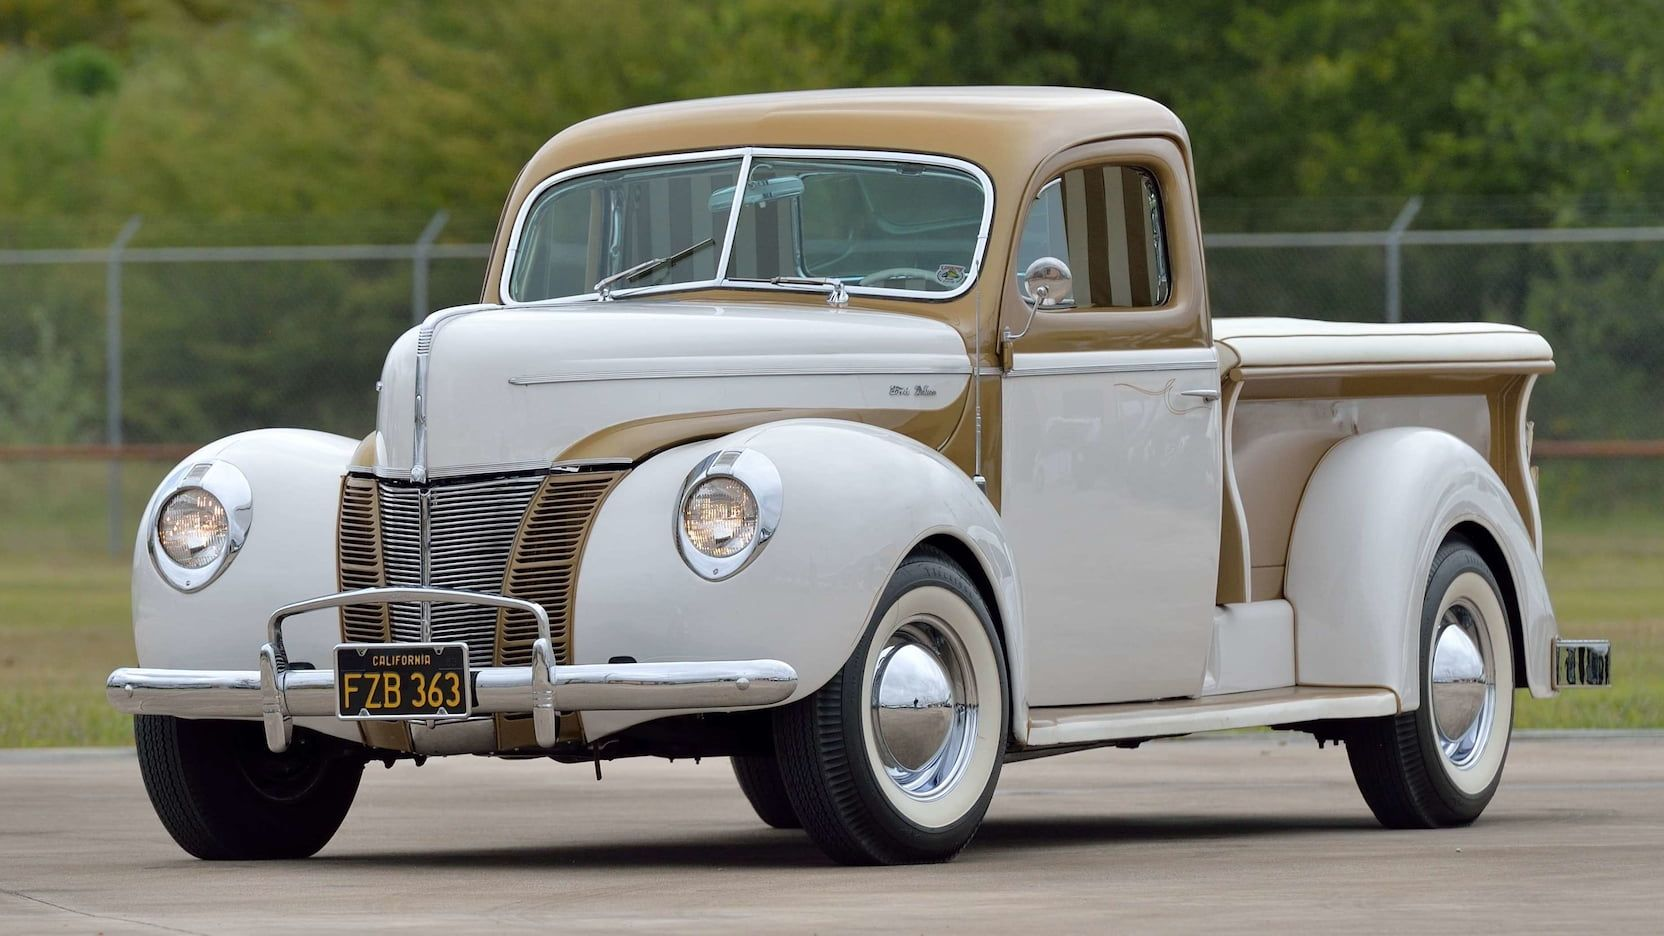 1937 Ford Fomoco Freighter Pickup Ford Kissimmee Ford Trucks